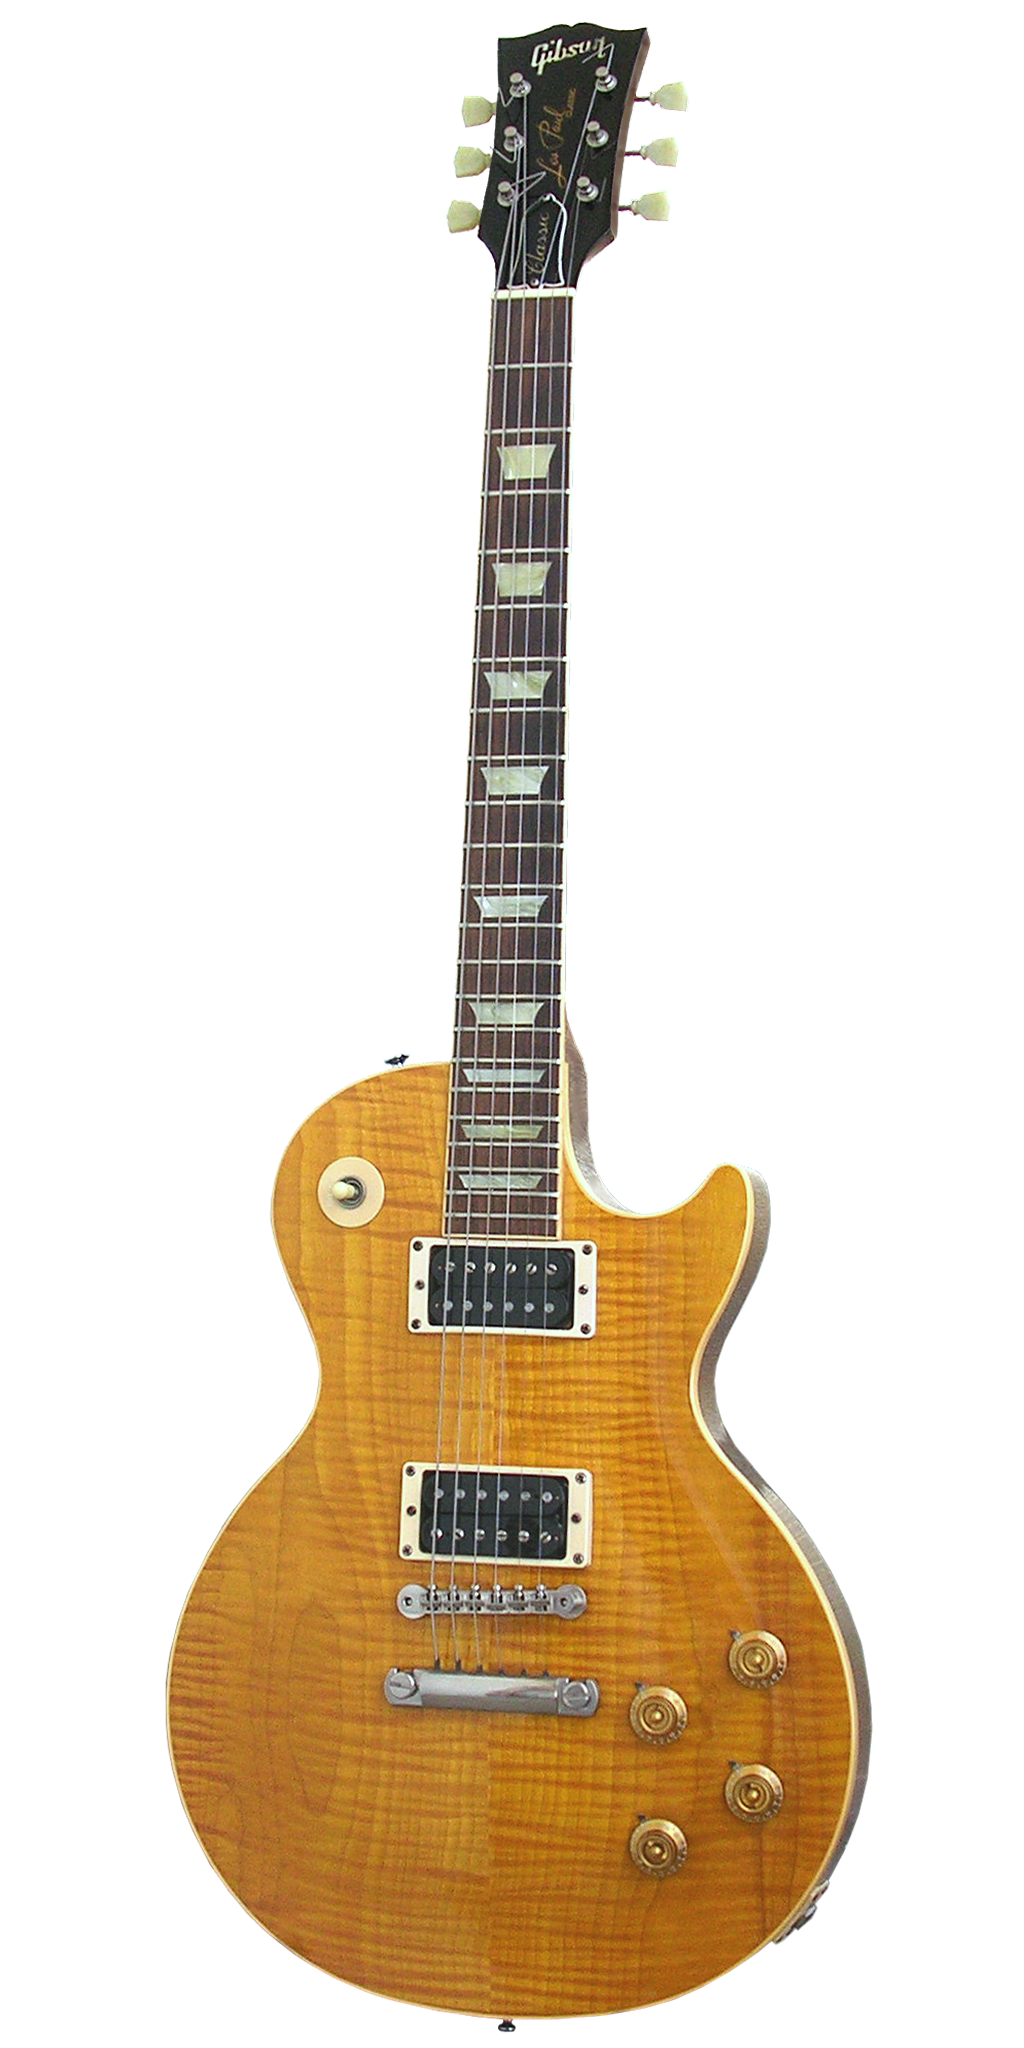 Gibson Les Paul – Wikipedia